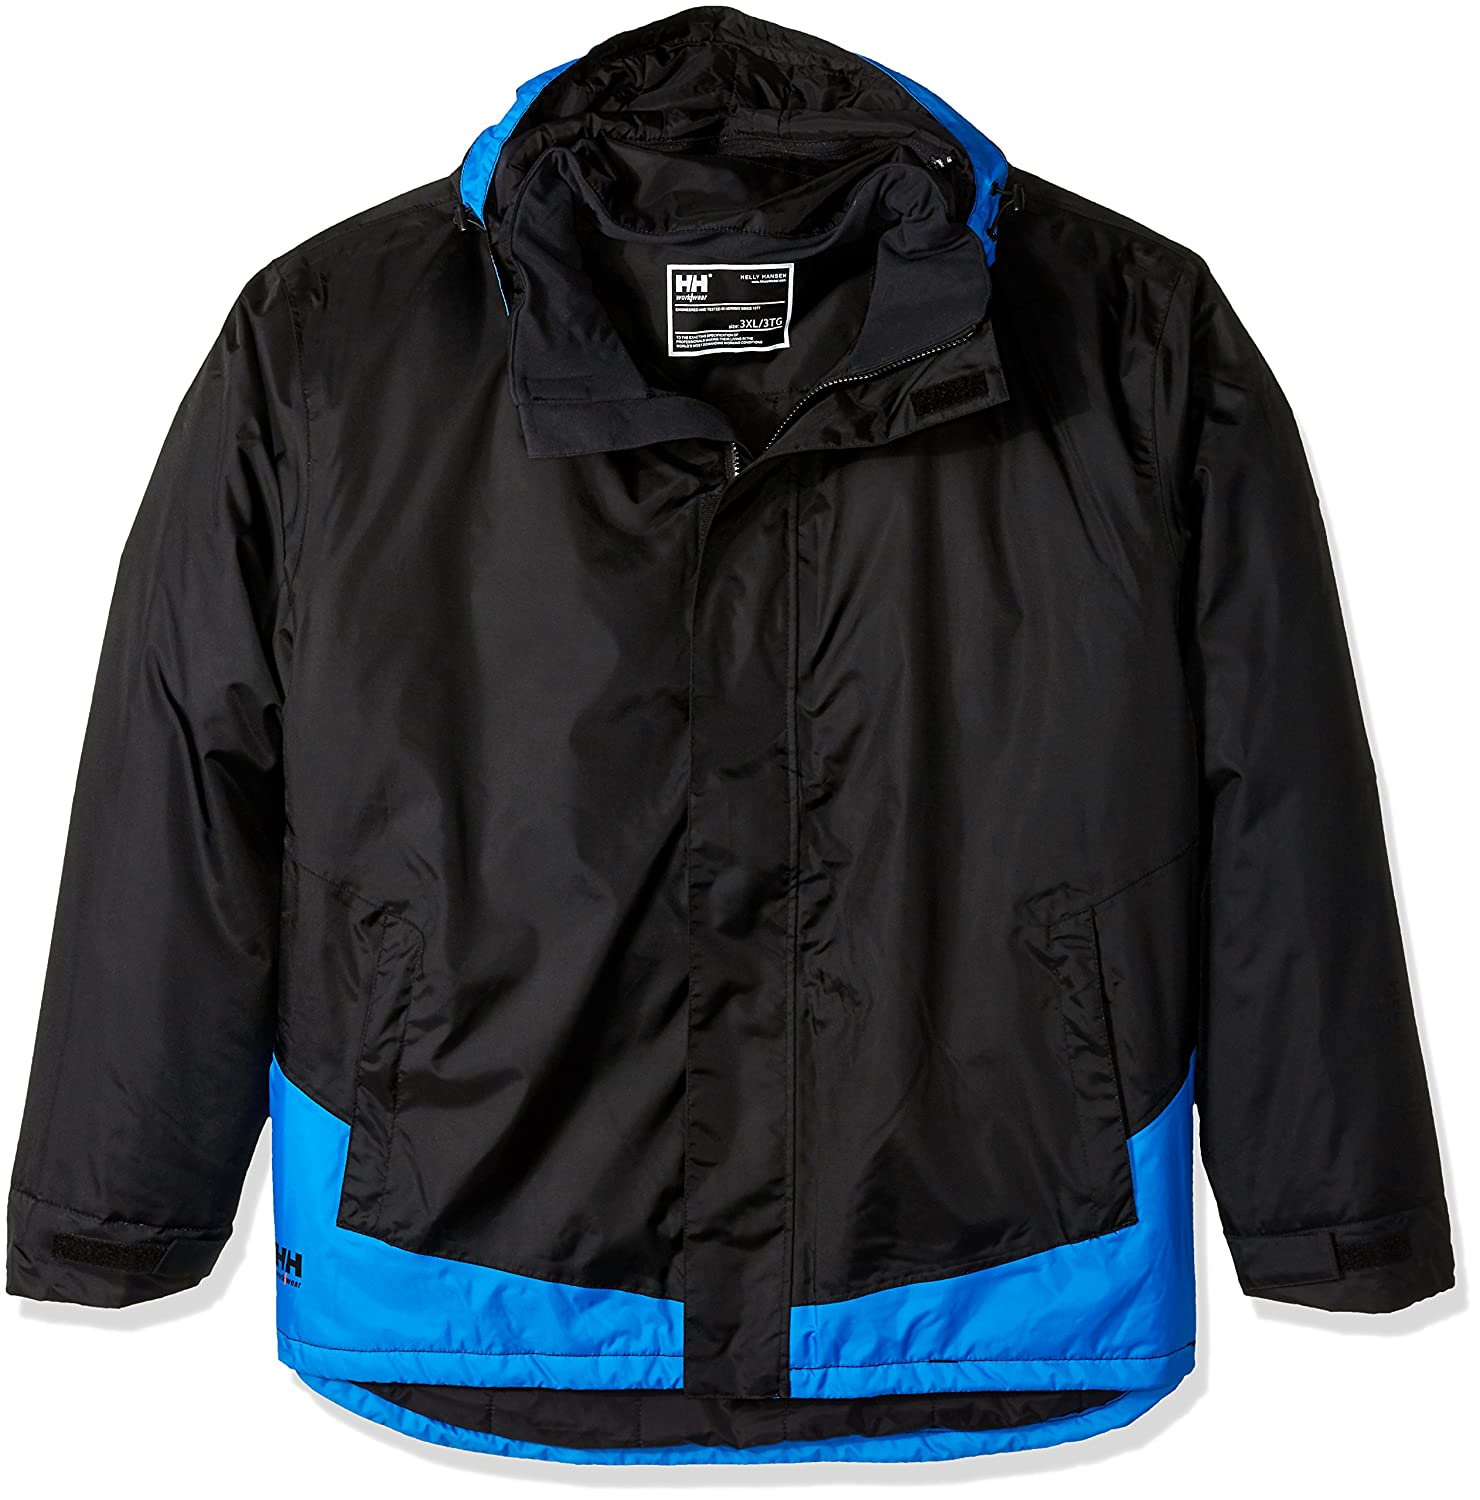 Helly HansenメンズBig and Tall Leknes Insulated Jacket B015EZHYFE 4L|Black/Racer Blue Black/Racer Blue 4L